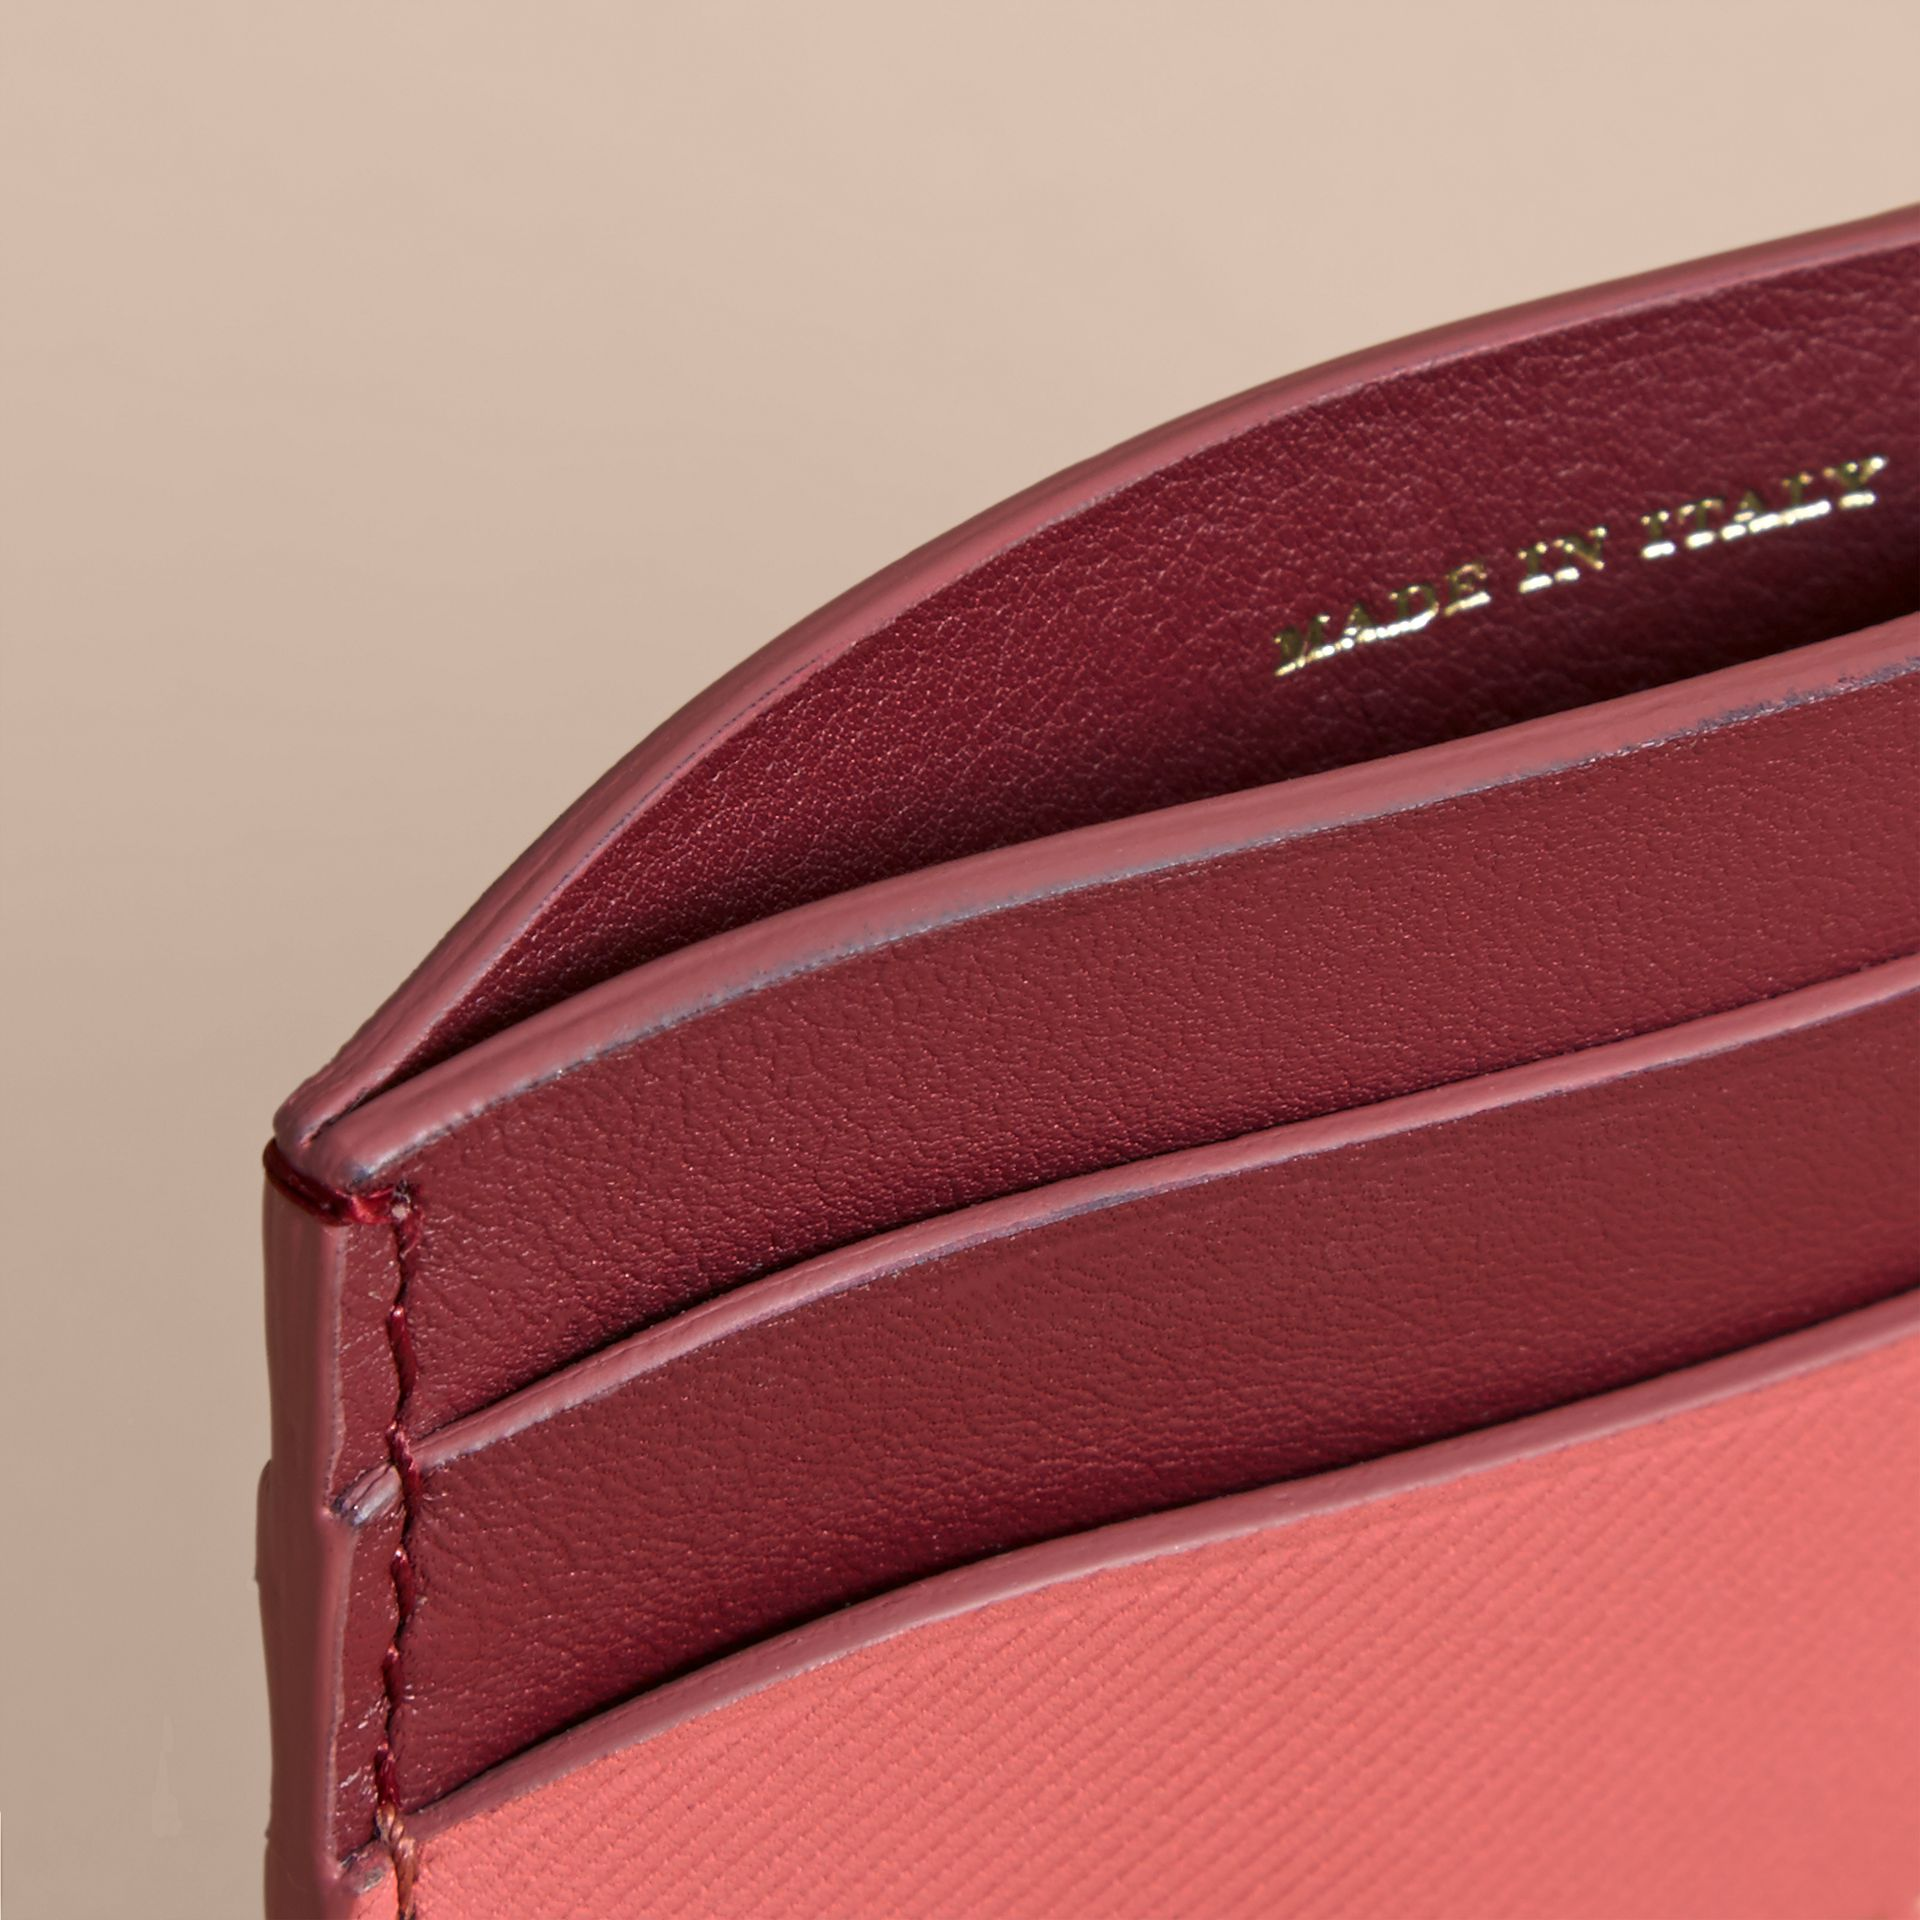 Two-tone Trench Leather Card Case in Blossom Pink/ Antique Red - Women | Burberry - gallery image 3